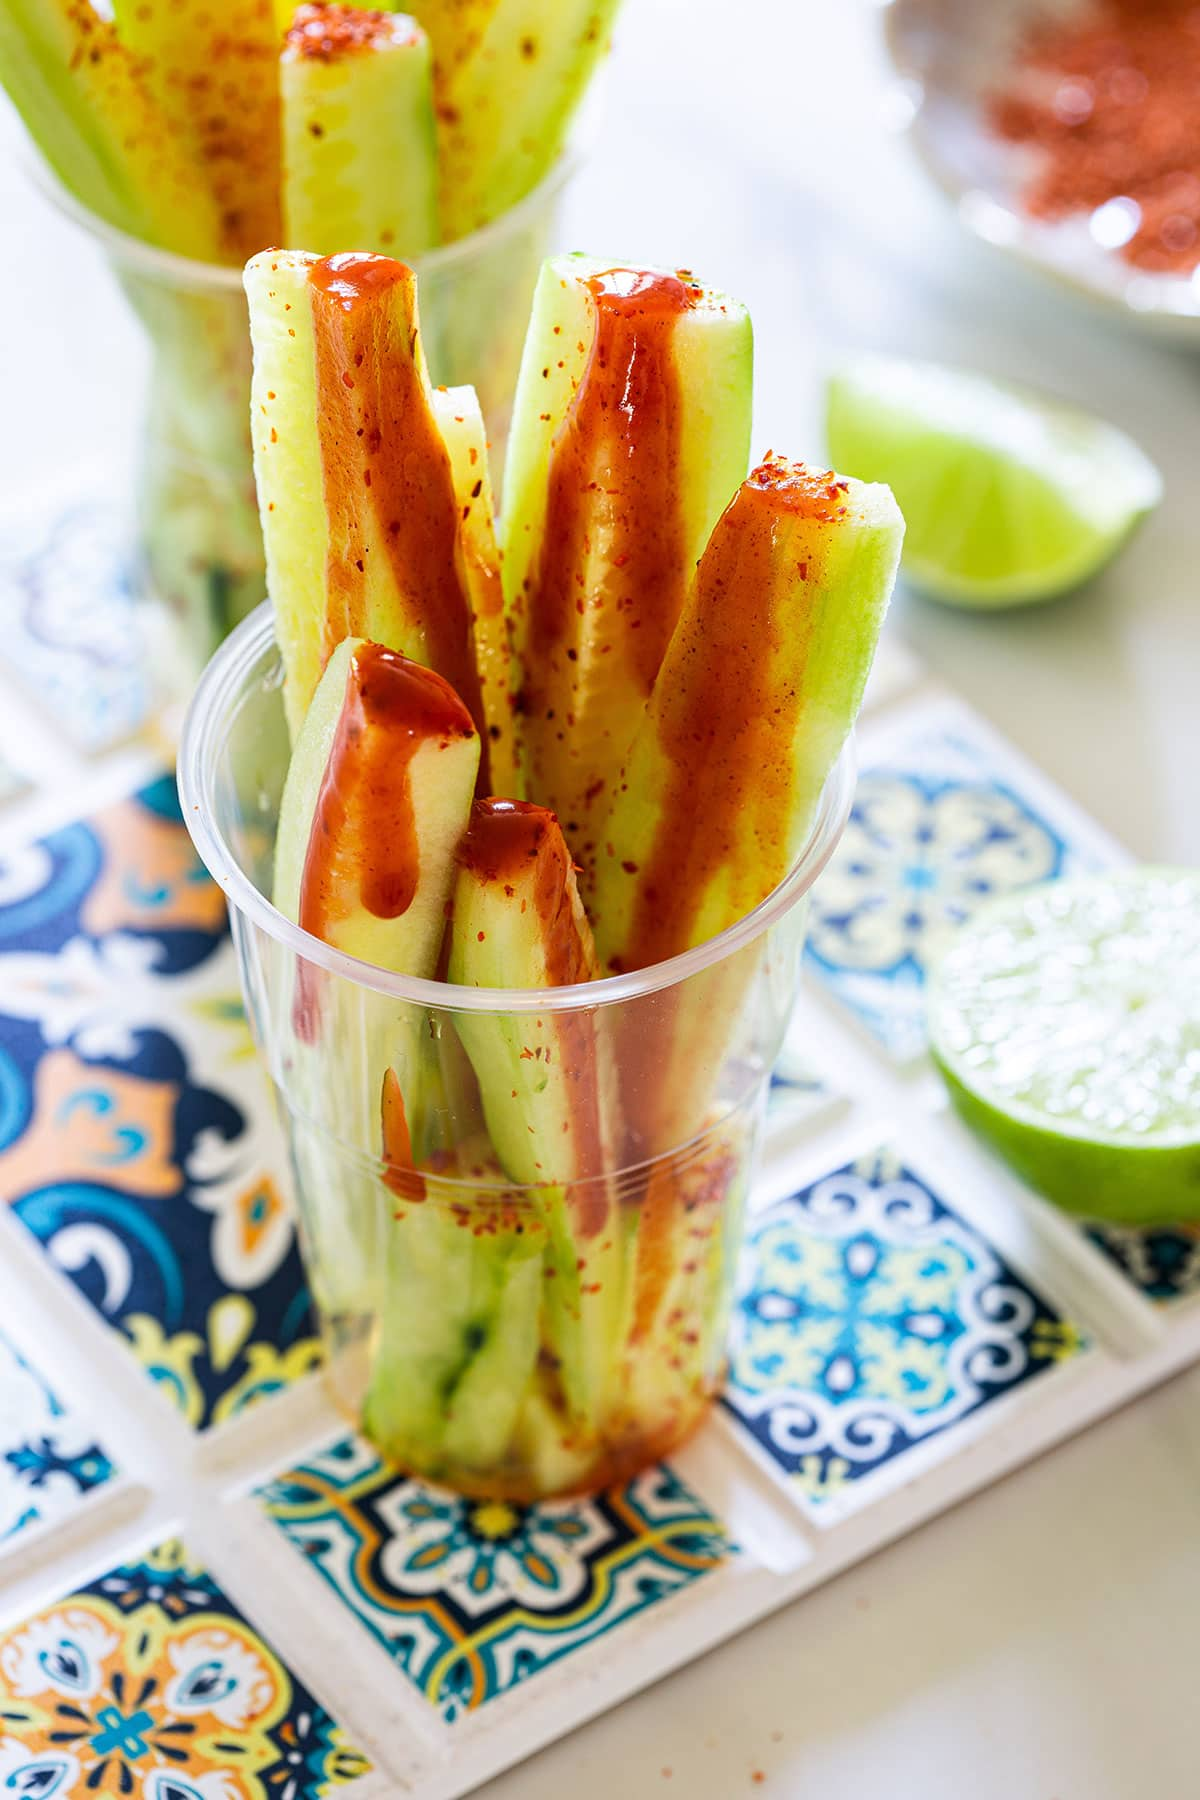 A close up of spears of cucumbers dressed with hot salsa, lime juice and chili powder.